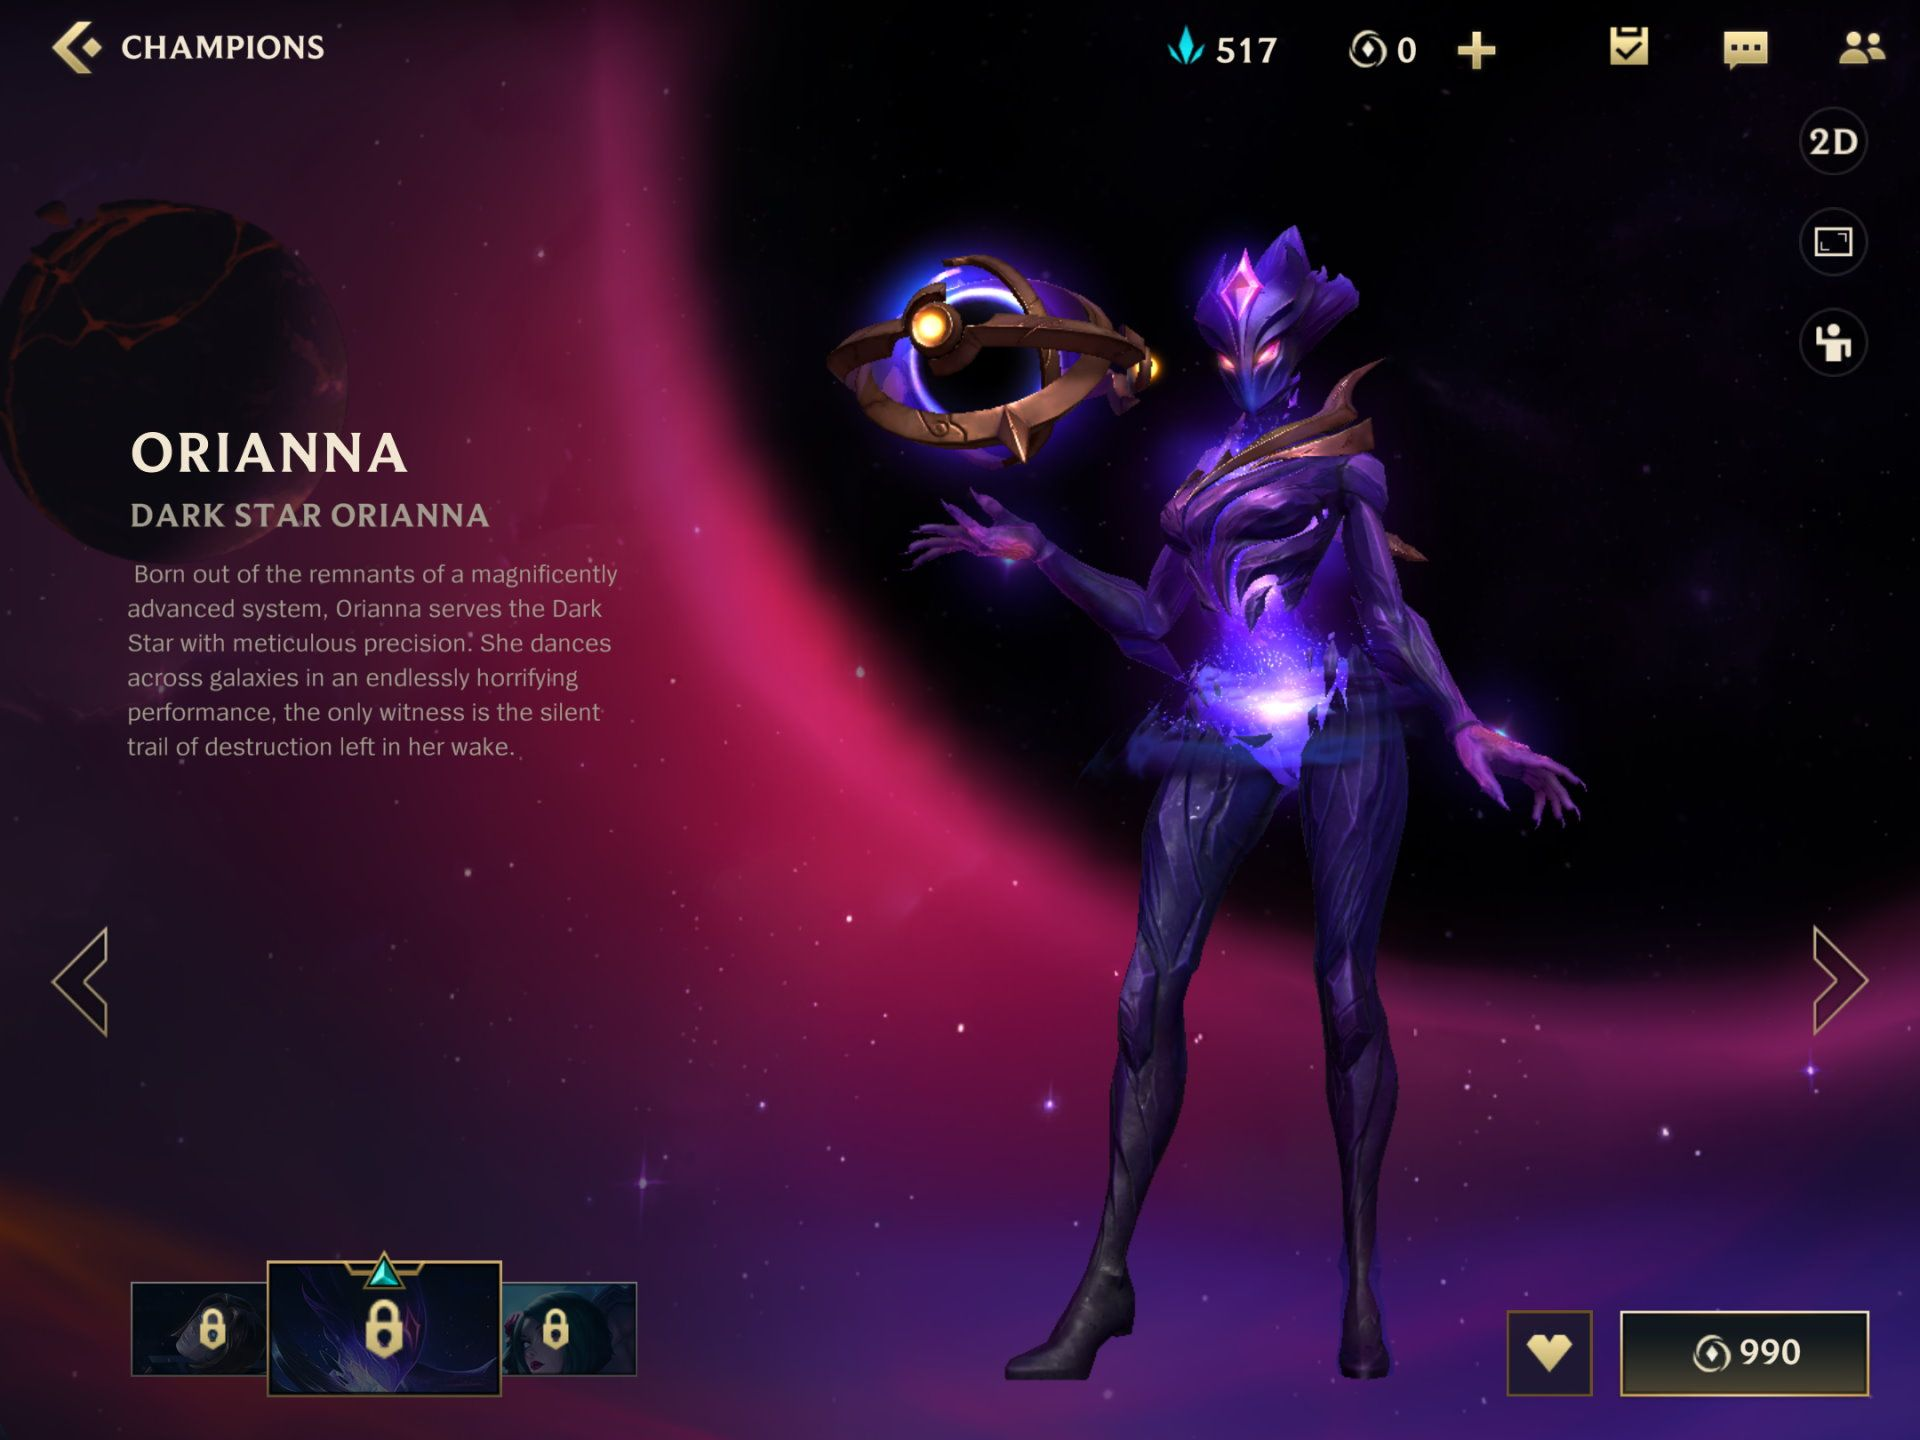 Dark Star Orianna in League of Legends Wild Rift